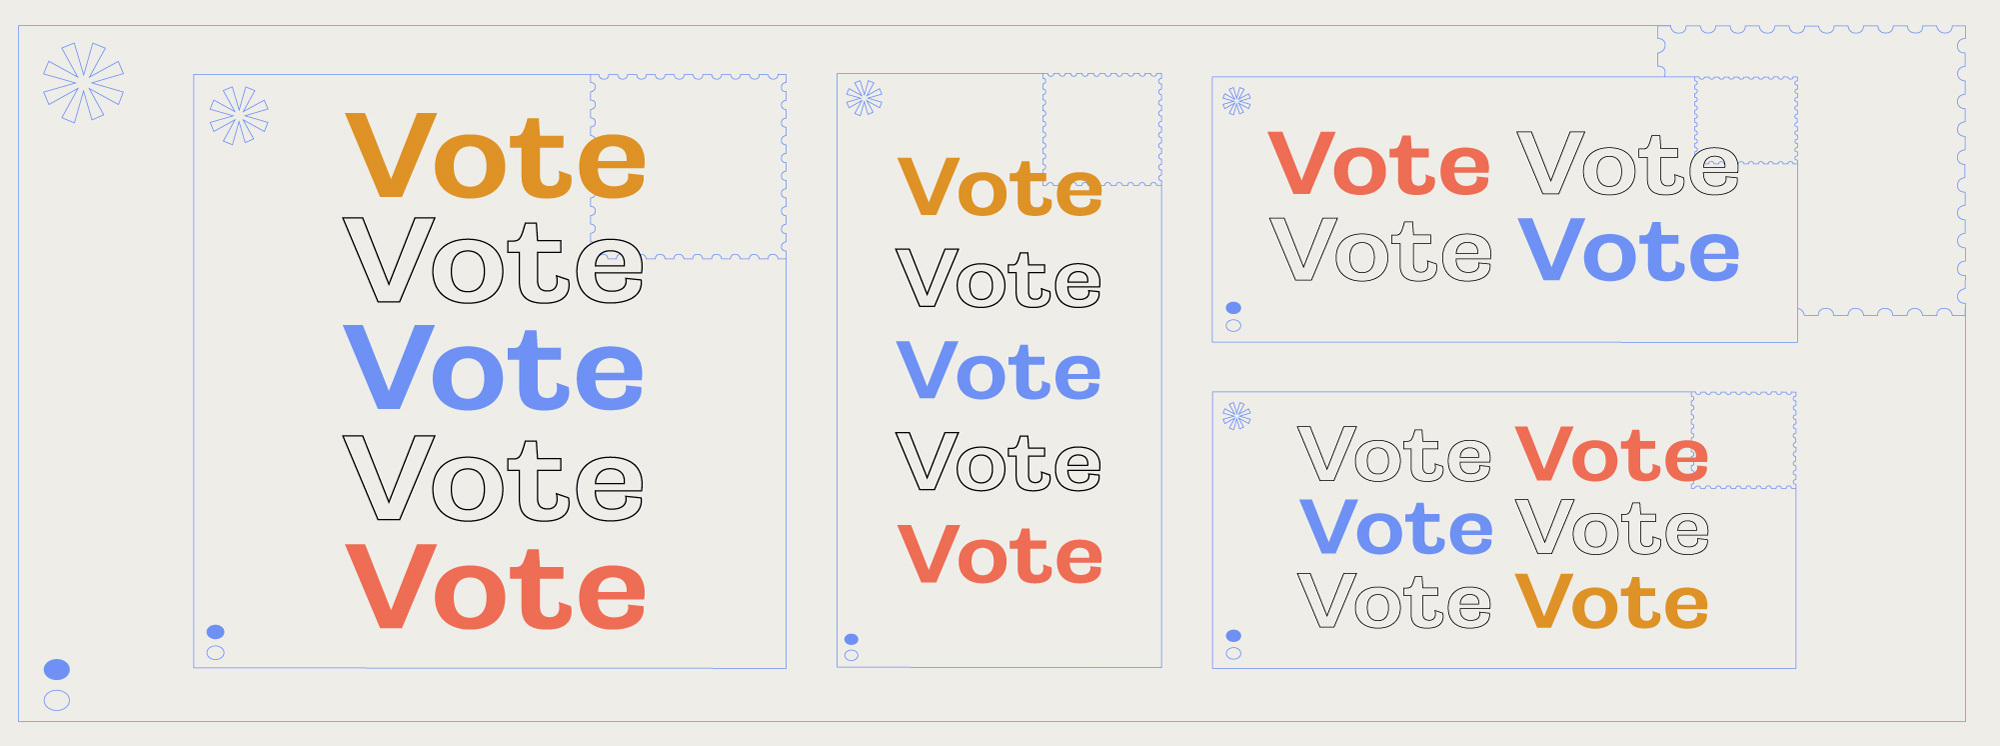 Vote social graphics overview